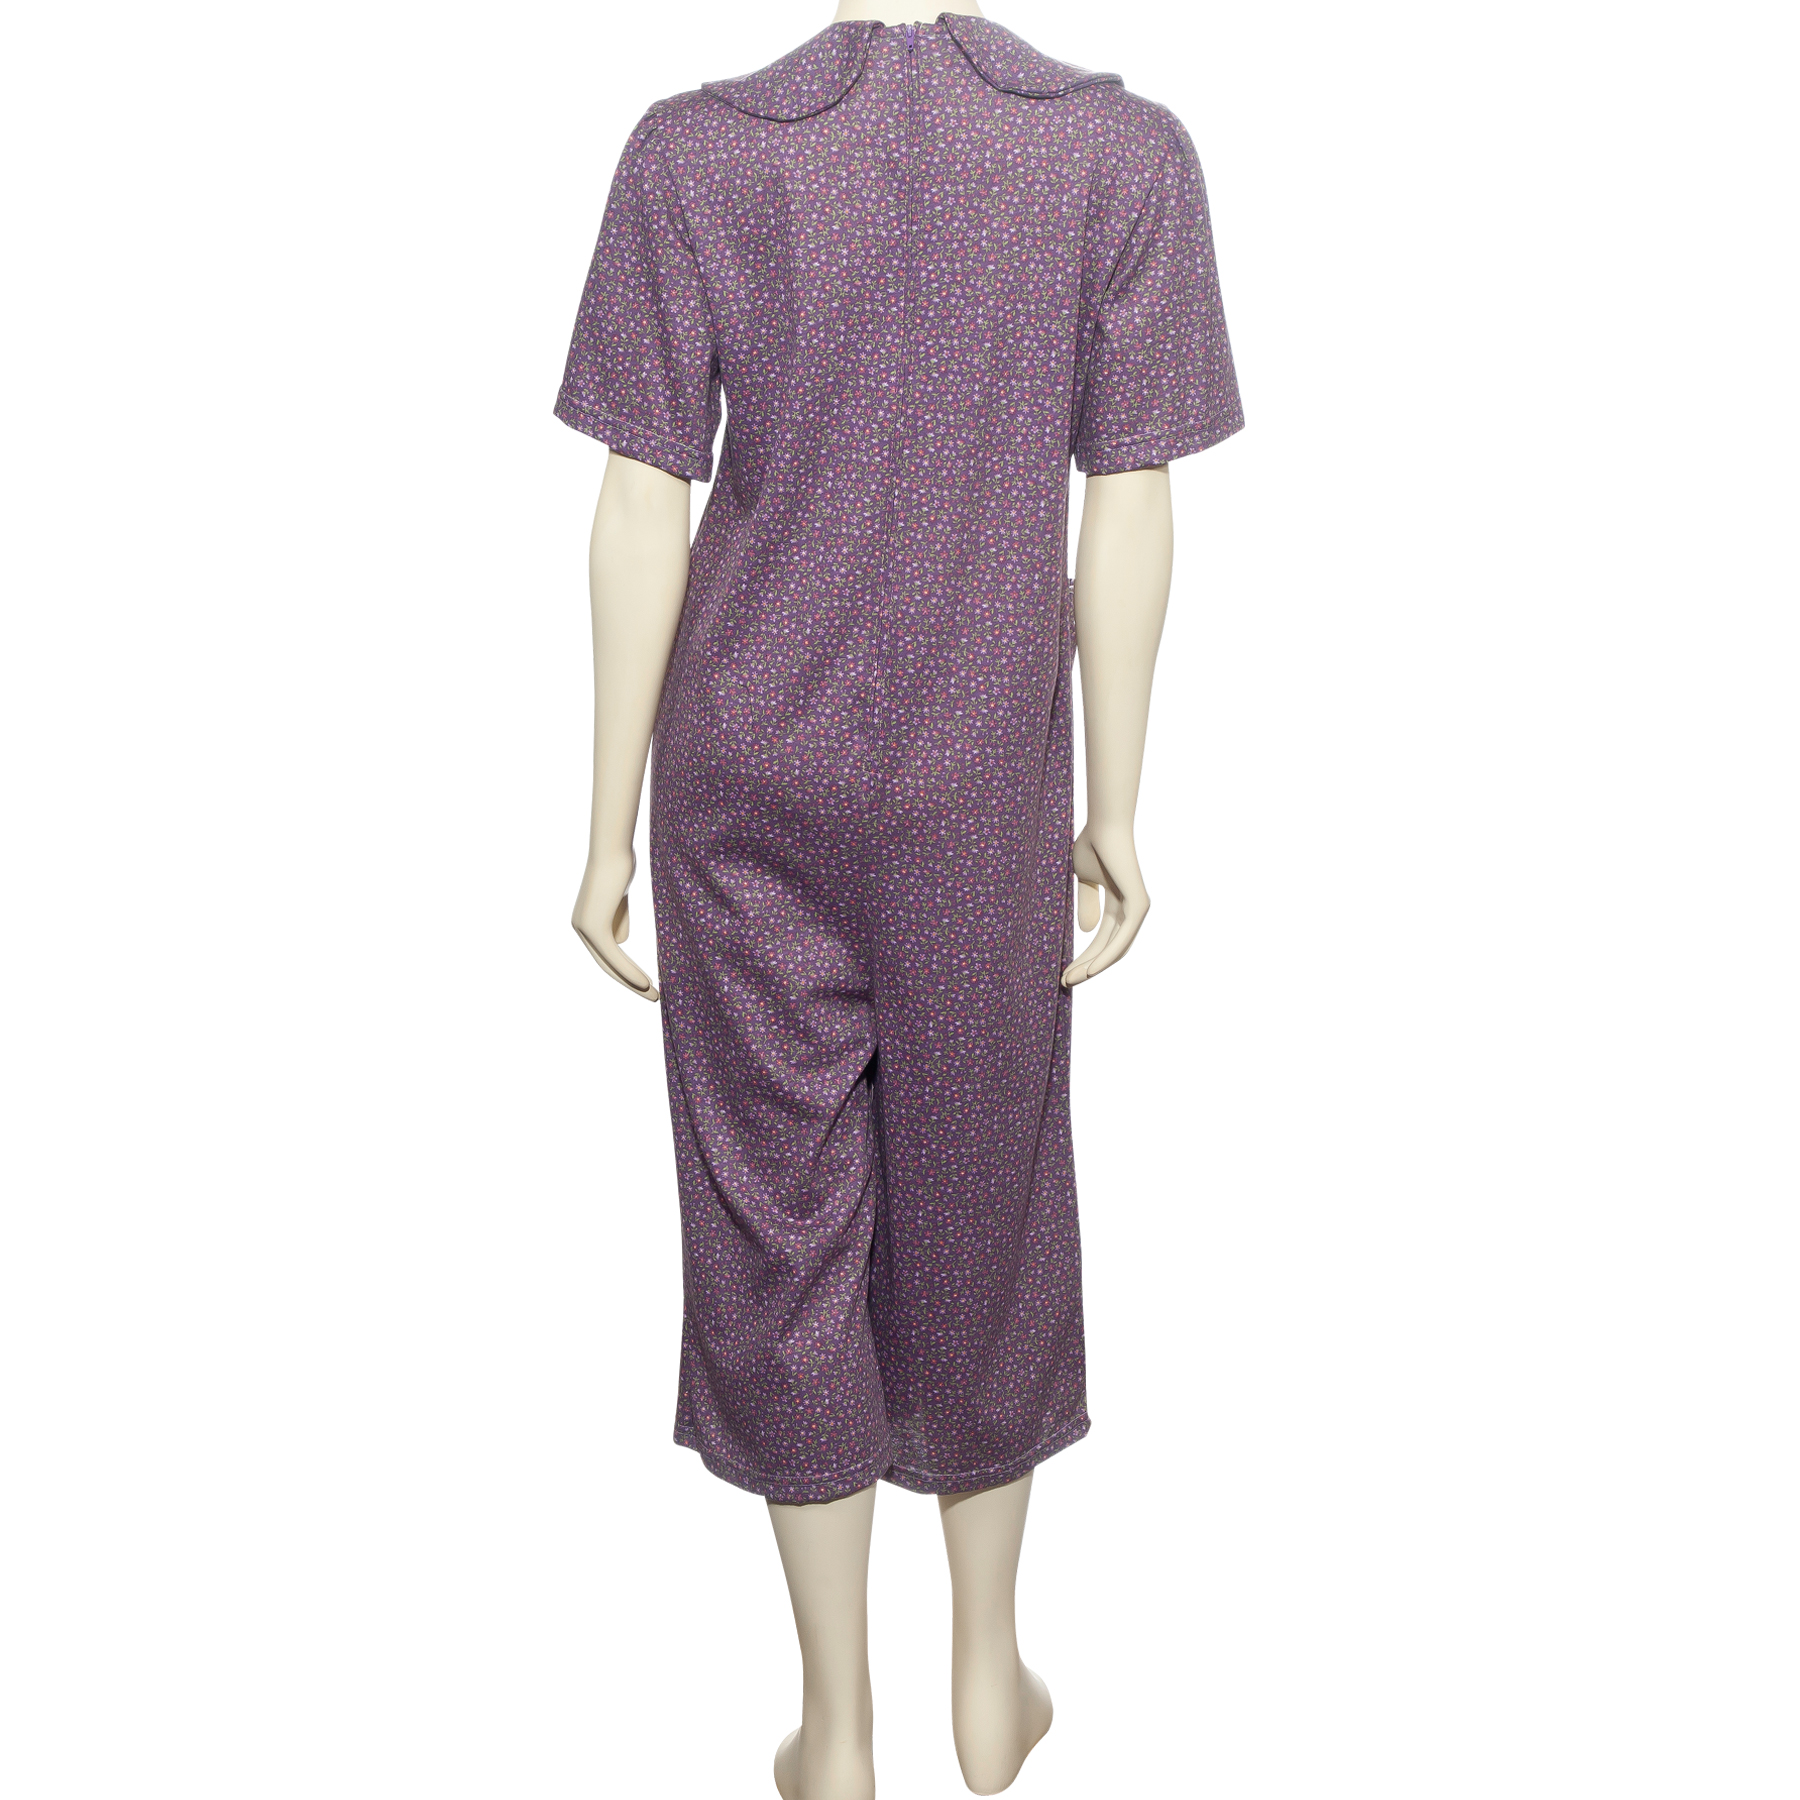 Which Anti-Strip  jumpsuit allows for easier changing of undergarments?